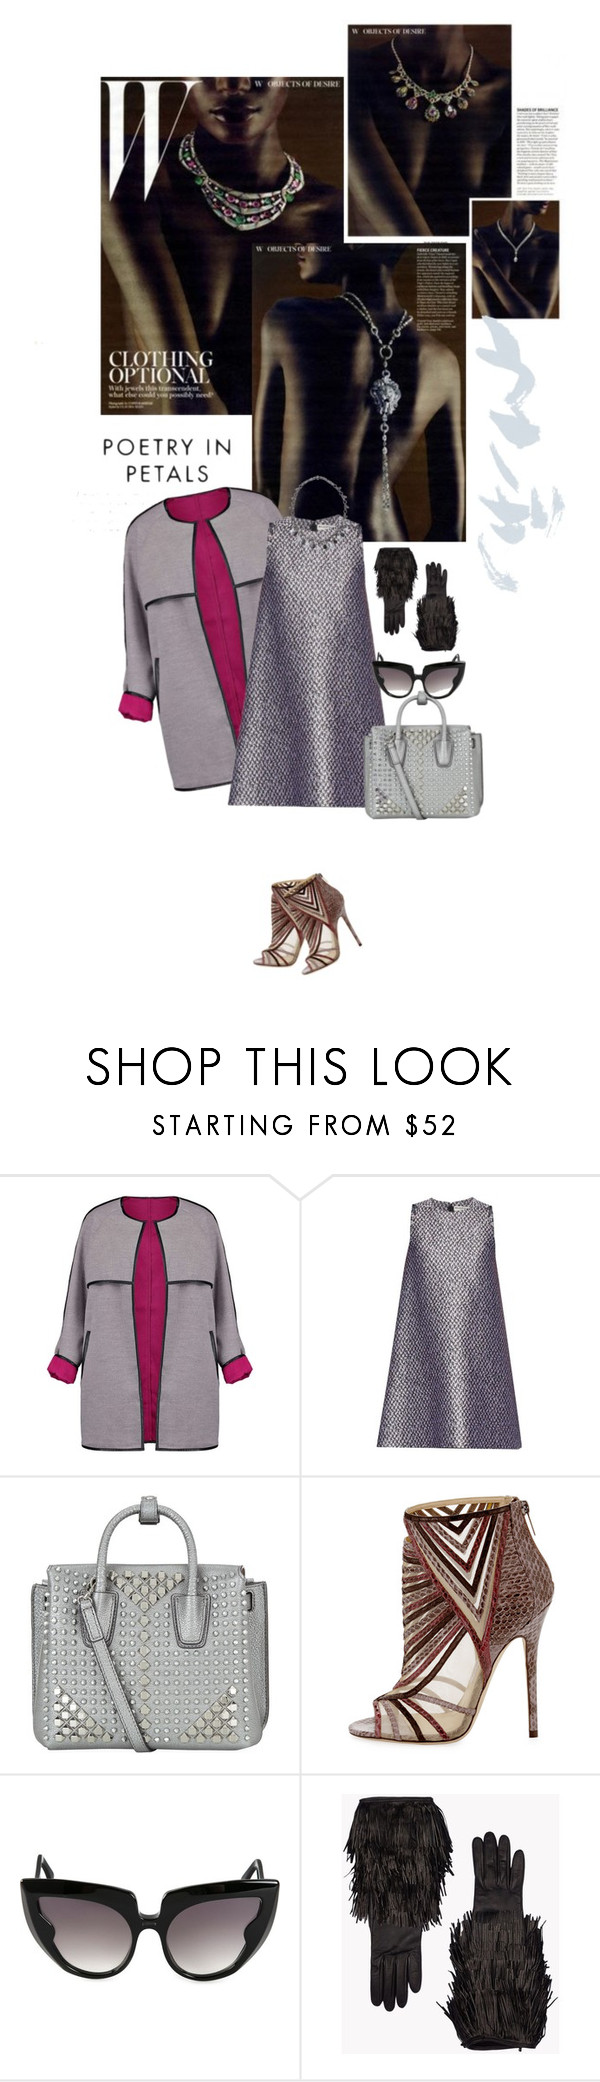 """Título 11"" by drigomes ❤ liked on Polyvore featuring Boohoo, Balenciaga, MCM, Jimmy Choo, Barn's, Dsquared2 and Bottega Veneta"